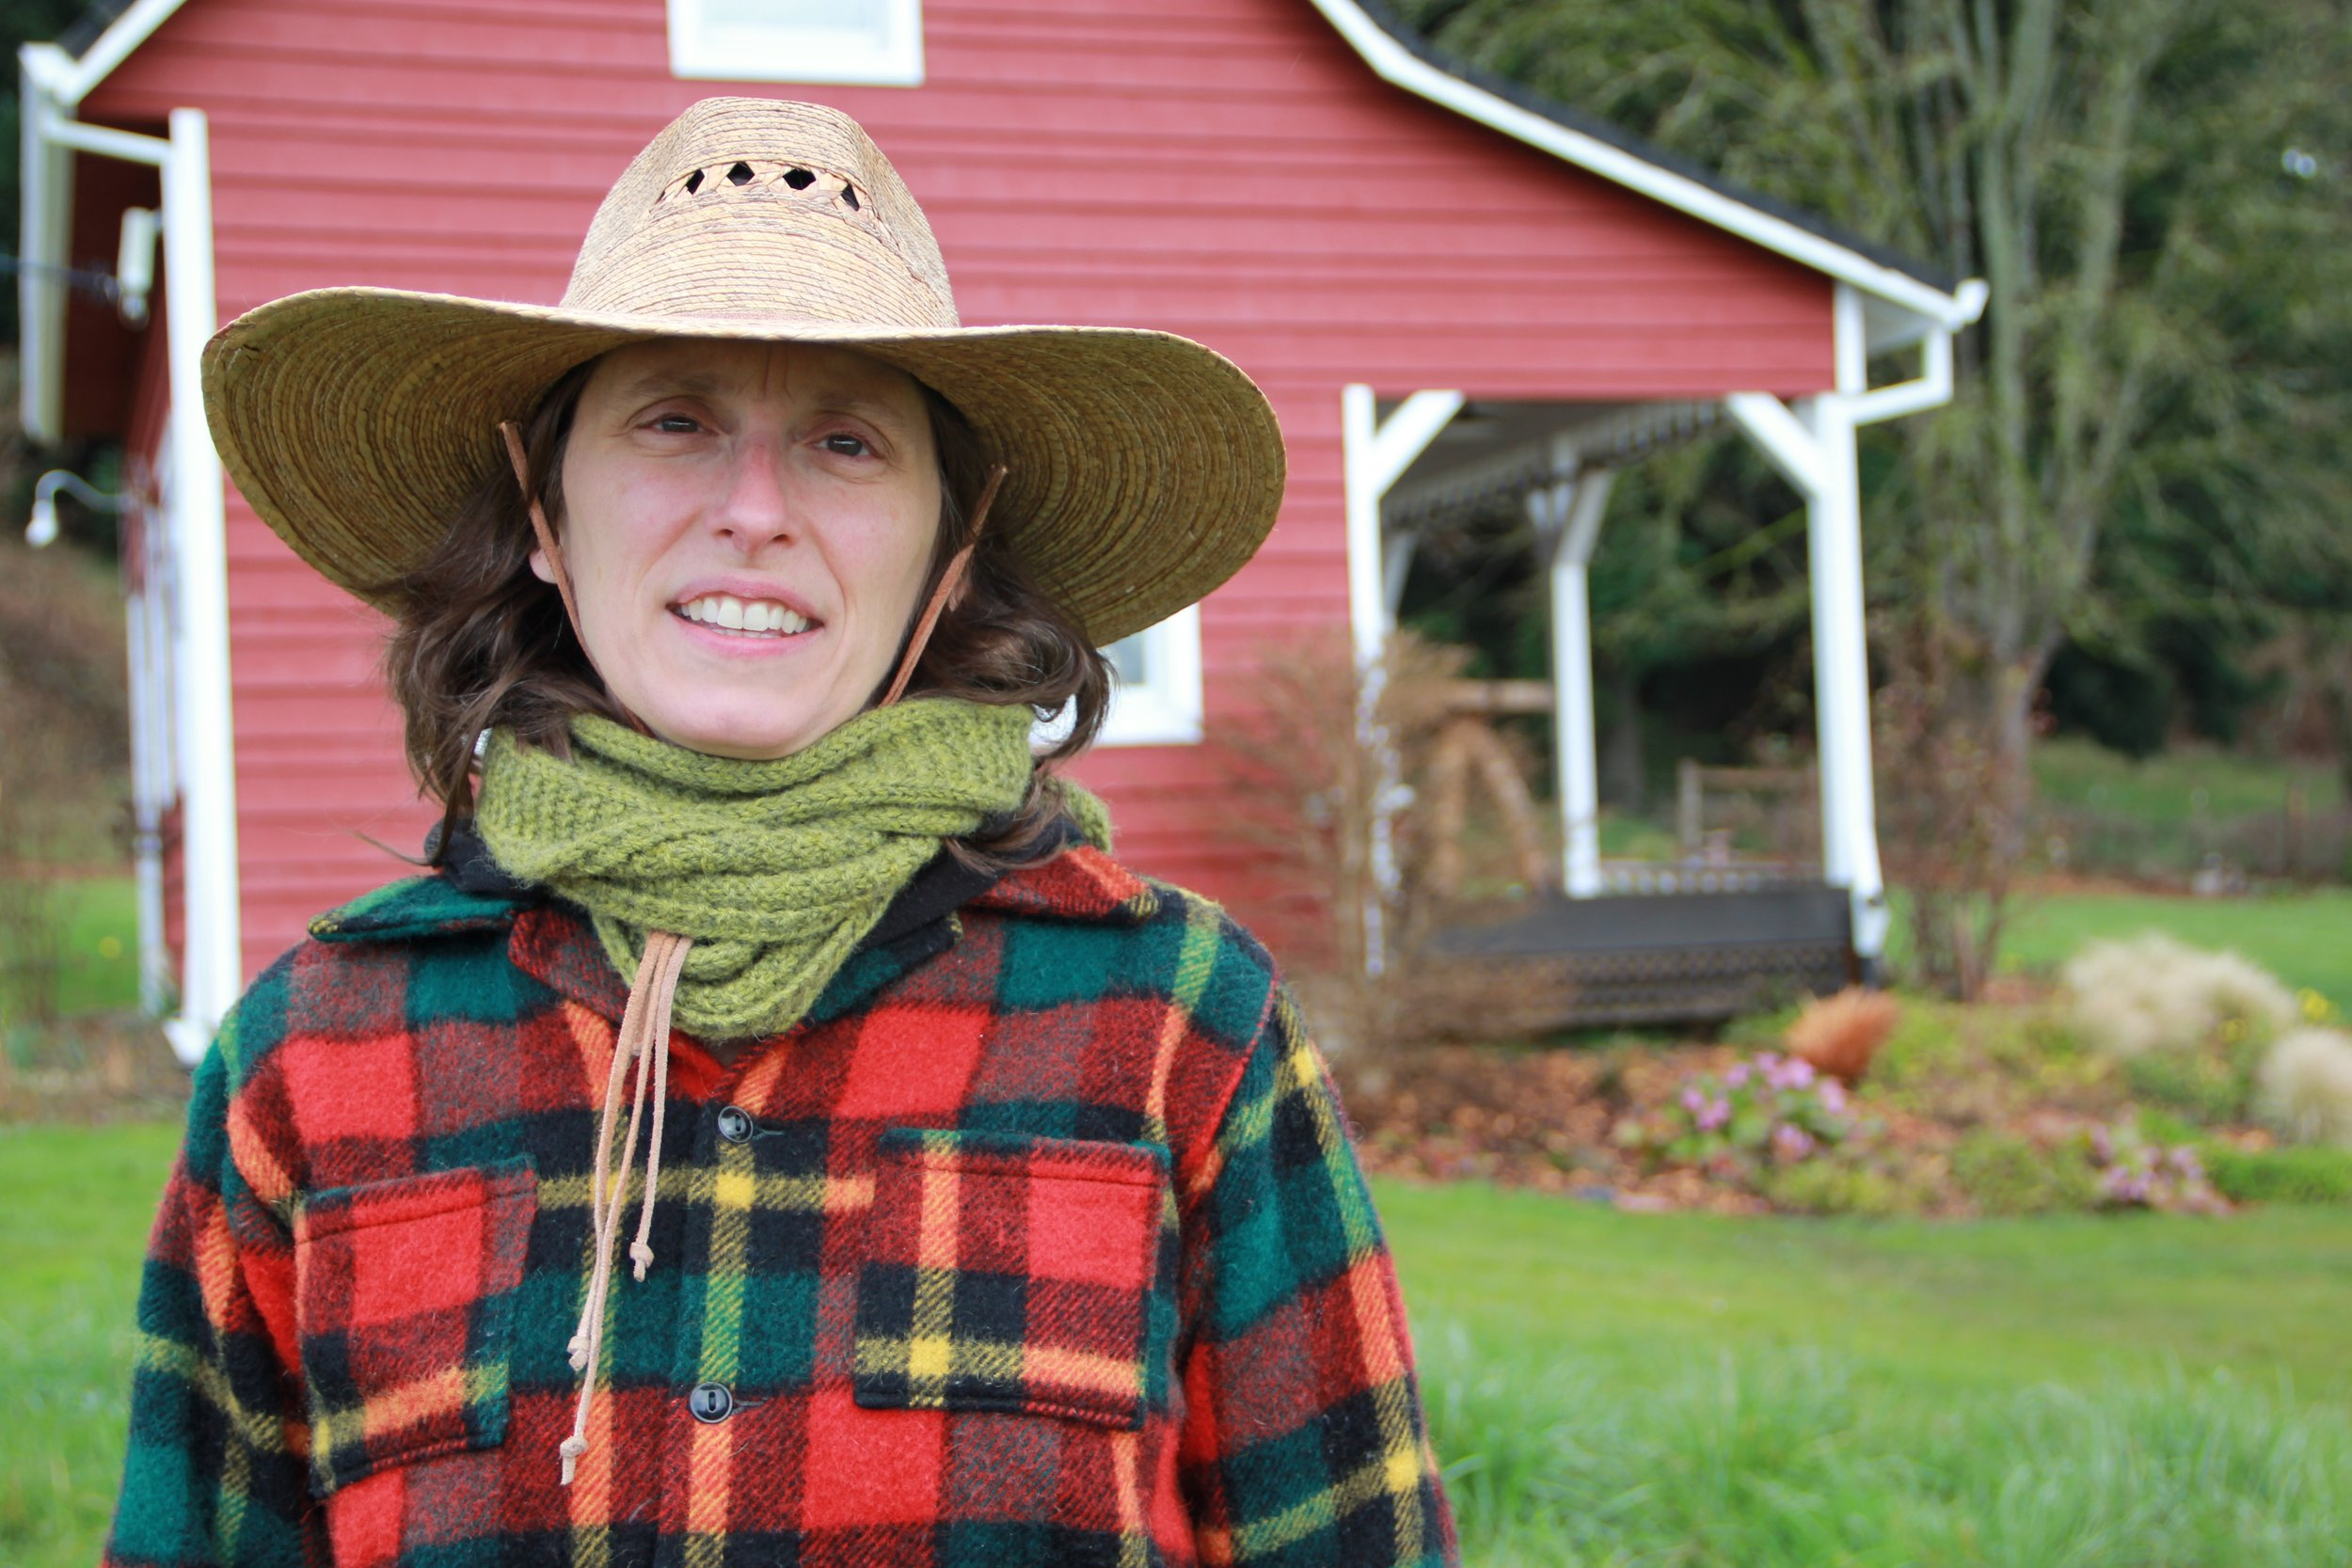 """GOOD FOOD, BAD FOOD: Agricultural, Ethics and Personal Choice - Friday, April 26, 2019 at 5:30 p.m. - PLEASE JOIN US for four thought-provoking conversations provided in partnership with Oregon Humanities Conversation Project whose goal is to connect people to ideas and to each other, not to push an agenda or arrive at consensus. Conversation is a powerful medium to invite our community's diverse perspectives and explore challenging questions. Hope you can join in!!4: GOOD FOOD, BAD FOOD: Agricultural, Ethics and Personal ChoiceOregon boasts a multibillion-dollar agricultural economy that includes both industrial and small-scale community-based agriculture (e.g., CSAs, farmers' markets, and community gardens). Kristy Athens, author of Get Your Pitchfork On! The Real Dirt on Country Living and TEDx Talk speaker on food systems, will focus conversation on our efforts and choices to nurture community and local and autonomous food systems. Are these choices as consequential as consumers would like them to be? Does """"voting with your dollars"""" significantly shape our agricultural systems?.Rockford Grange doors open and soup's on at 5:30 pm. Conversation begins at 6:30 pm.$5.00 suggested donation for conversation; no one turned away for lack of fundsCheck oregonhumanities.org for more information about the Conversation Project and www.rockfordgrange.net to learn more about the other Conversations featured in the series Conversations at the Grange.For more information about this community discussion, please contact info@rockfordgrange.netThis program is made possible by the generous support of Oregon Humanities, the National Endowment for the Humanities, and the Oregon Cultural Trust."""